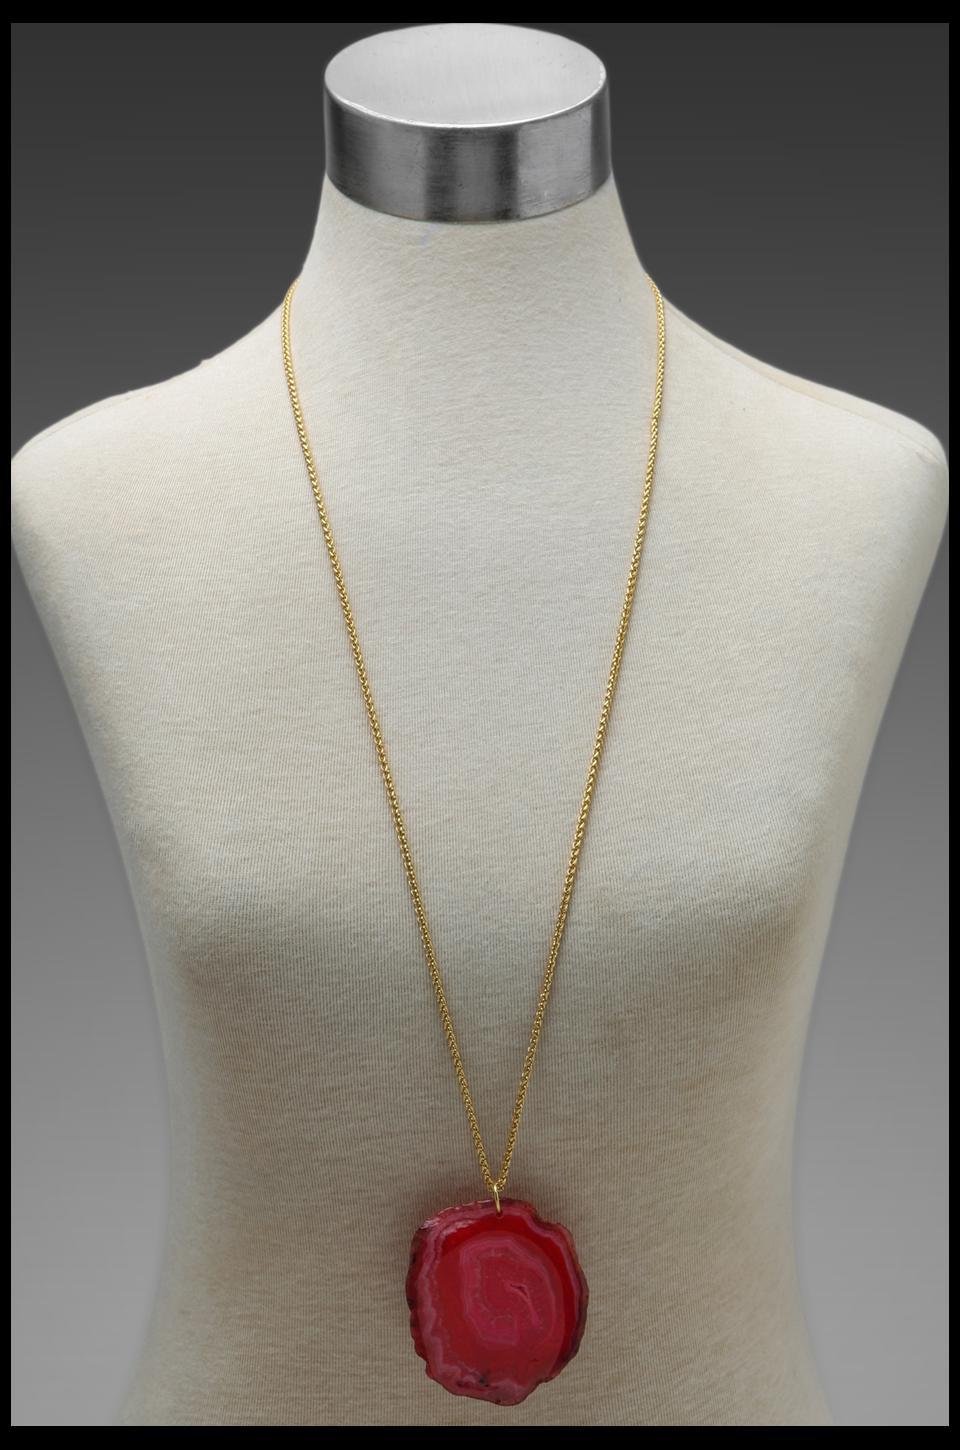 Kenneth Jay Lane 34' Gold Chain Pink Agate Pendant Necklace in Pink Agate